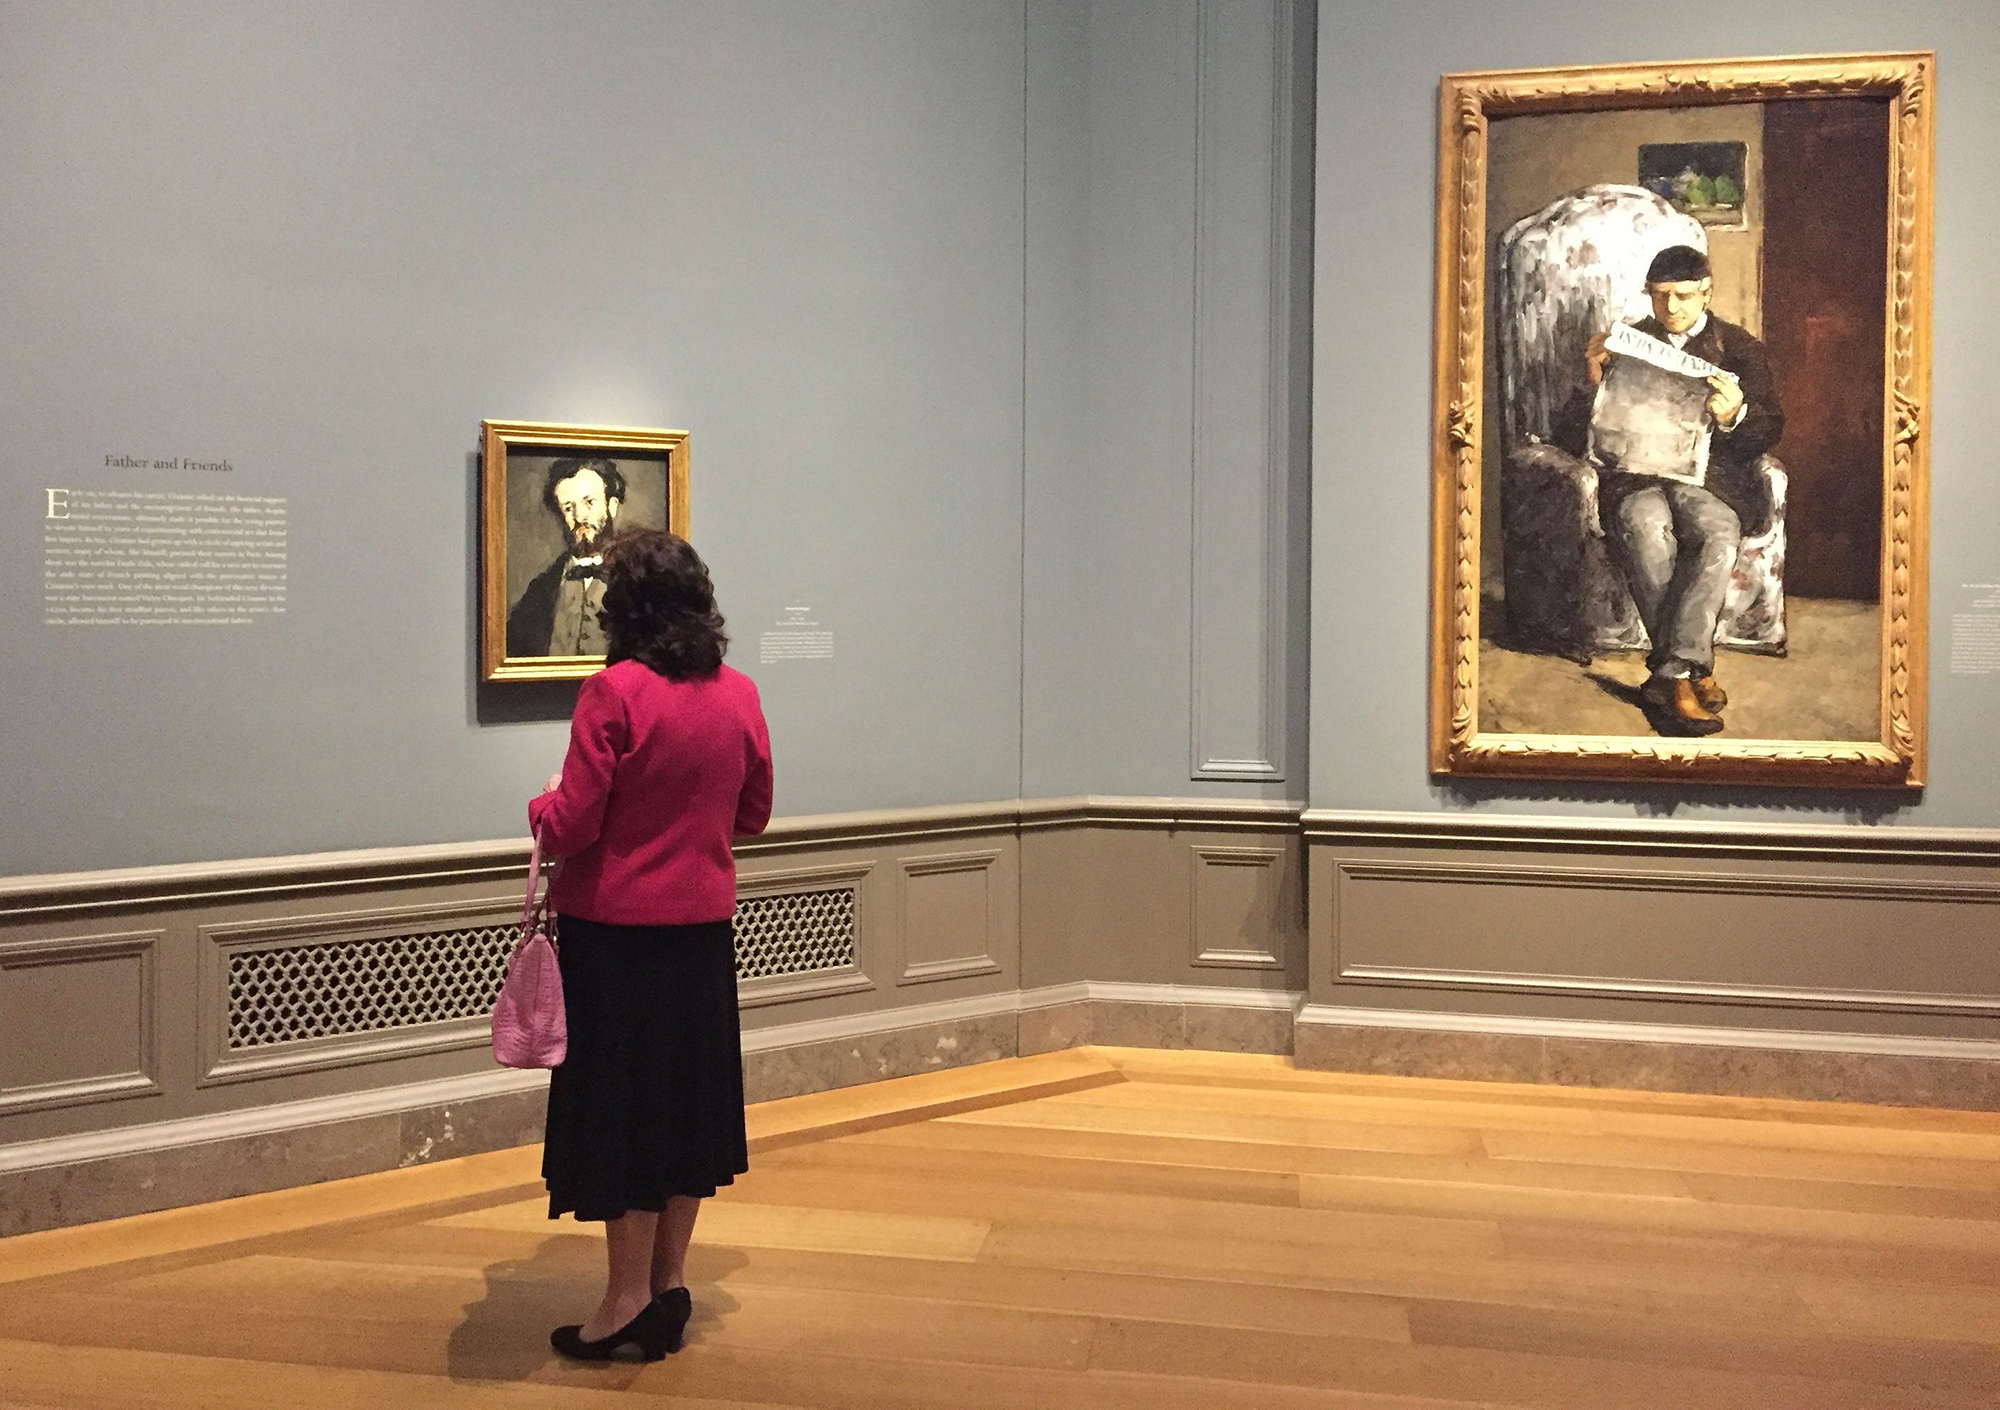 Cezanne portrait exhibtion gets underway in Washington, DC